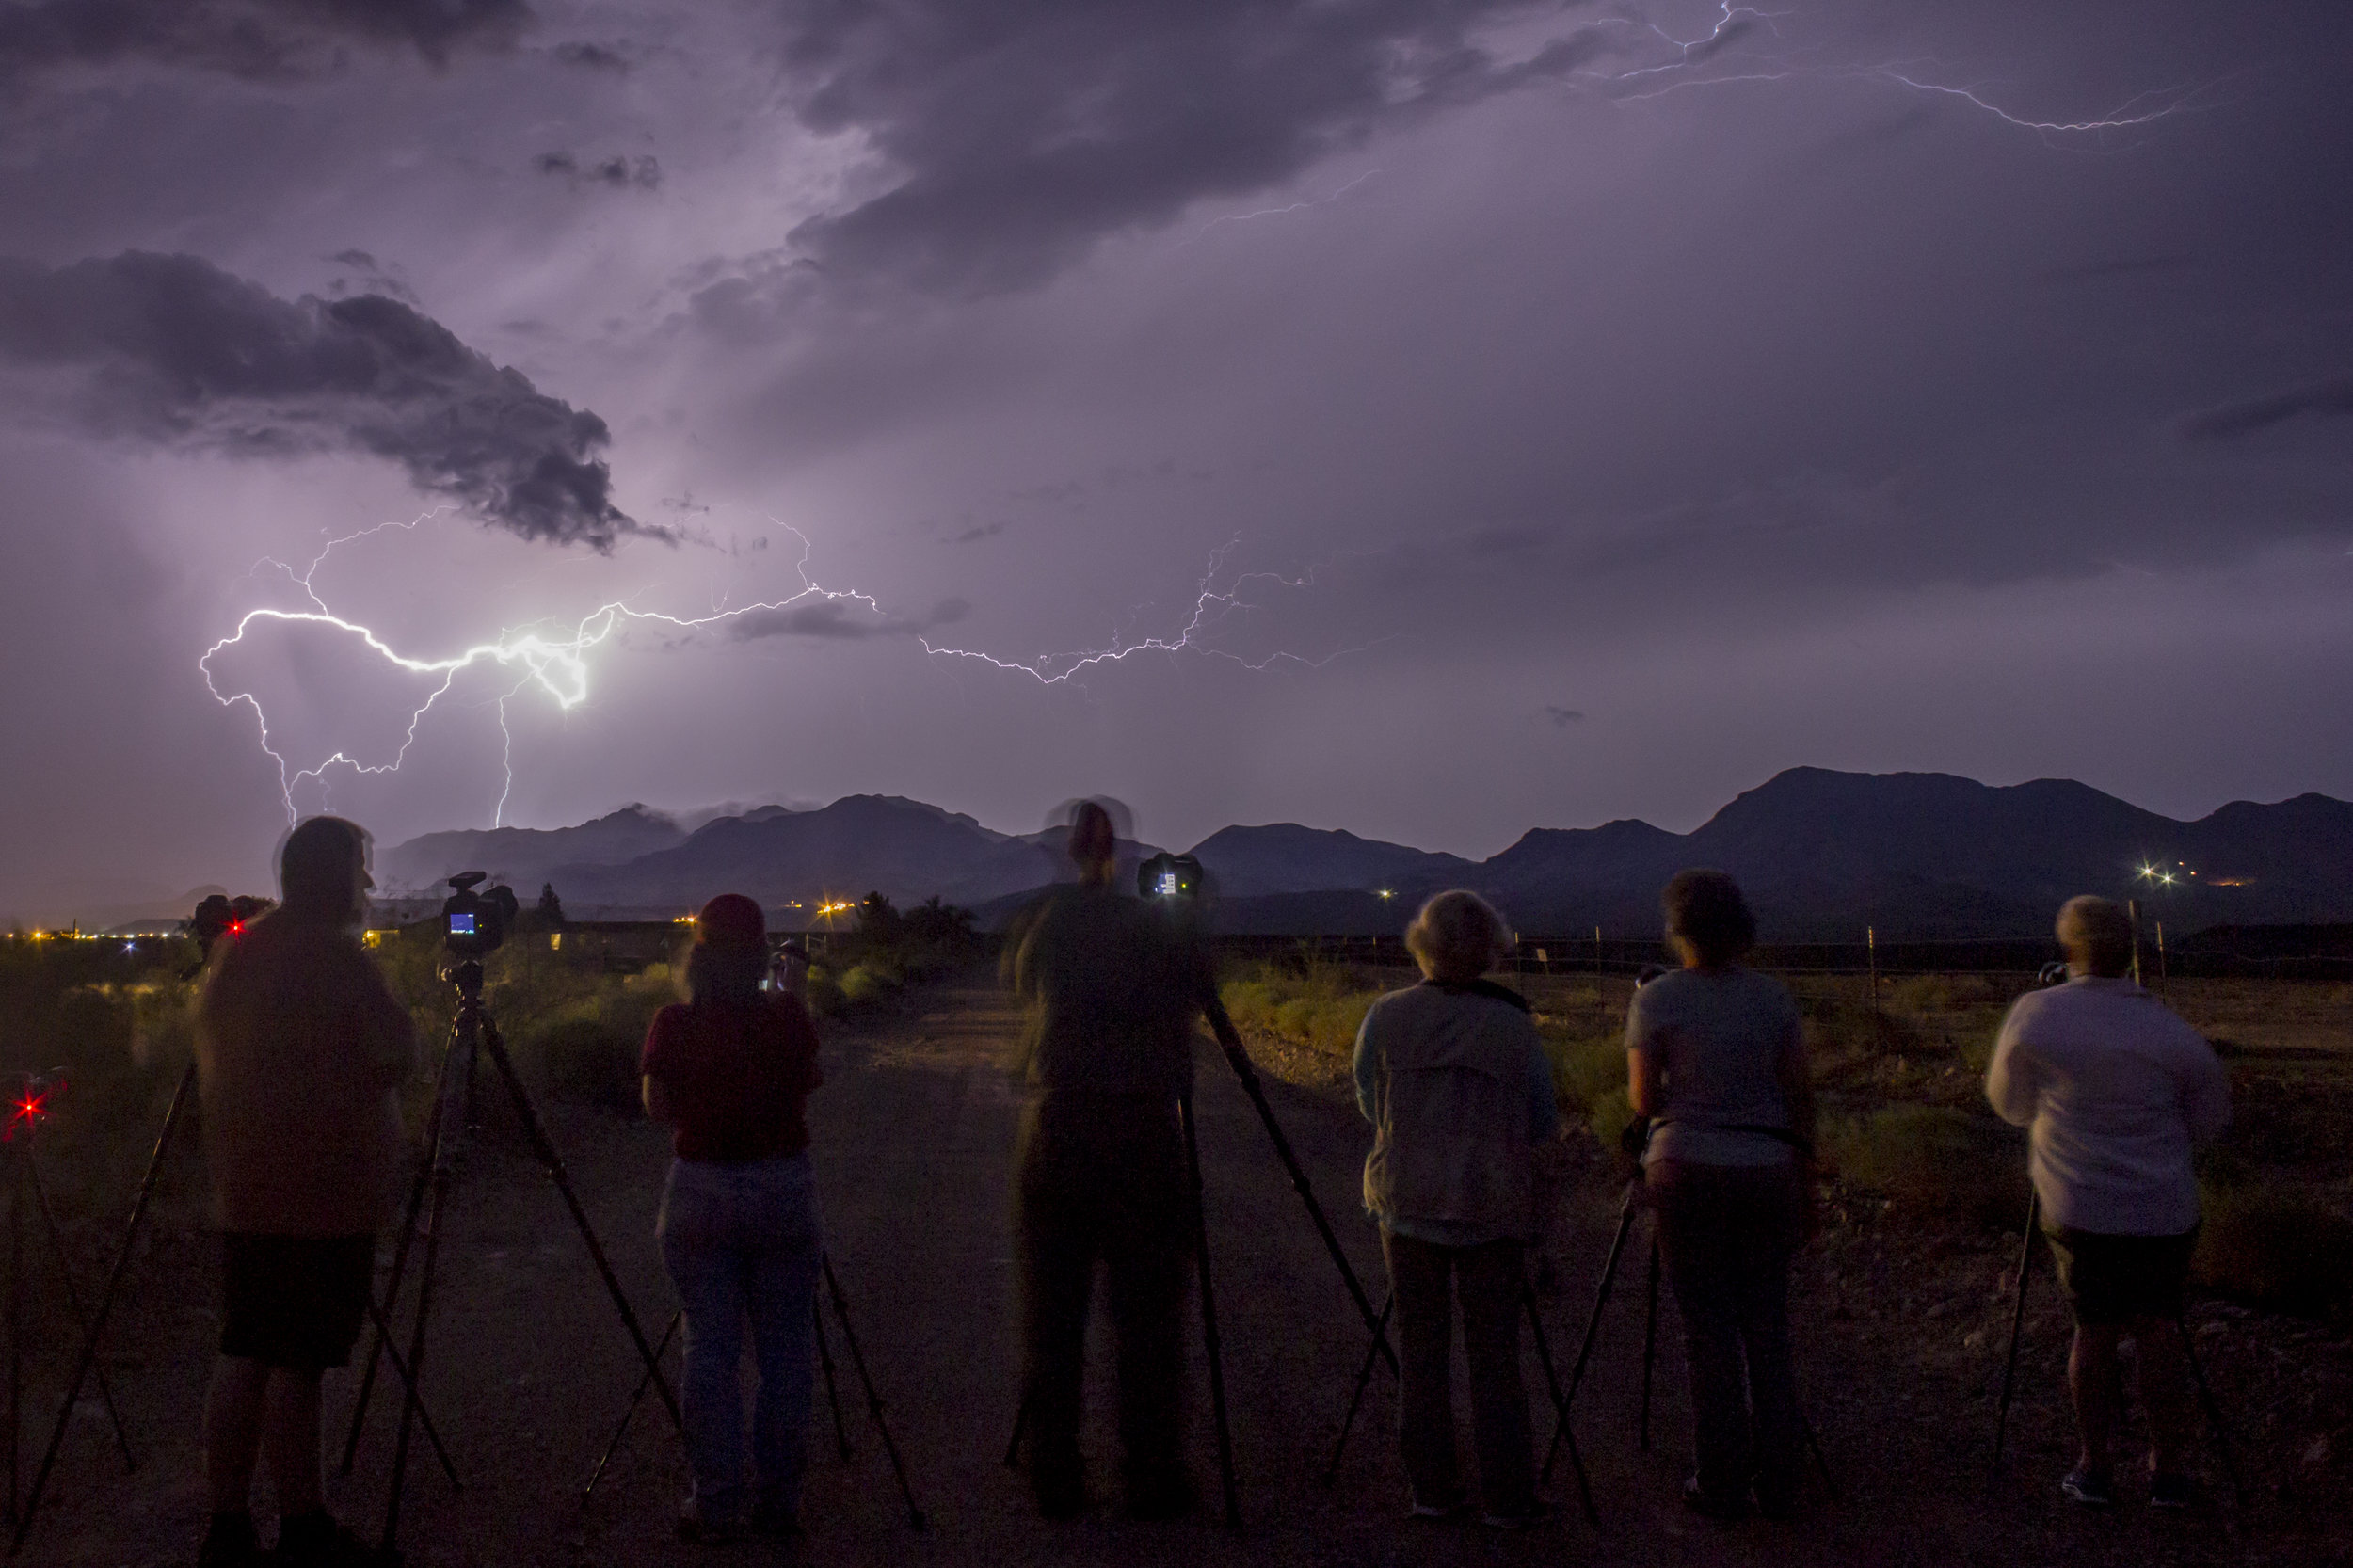 Often monsoon storms last well into the night.